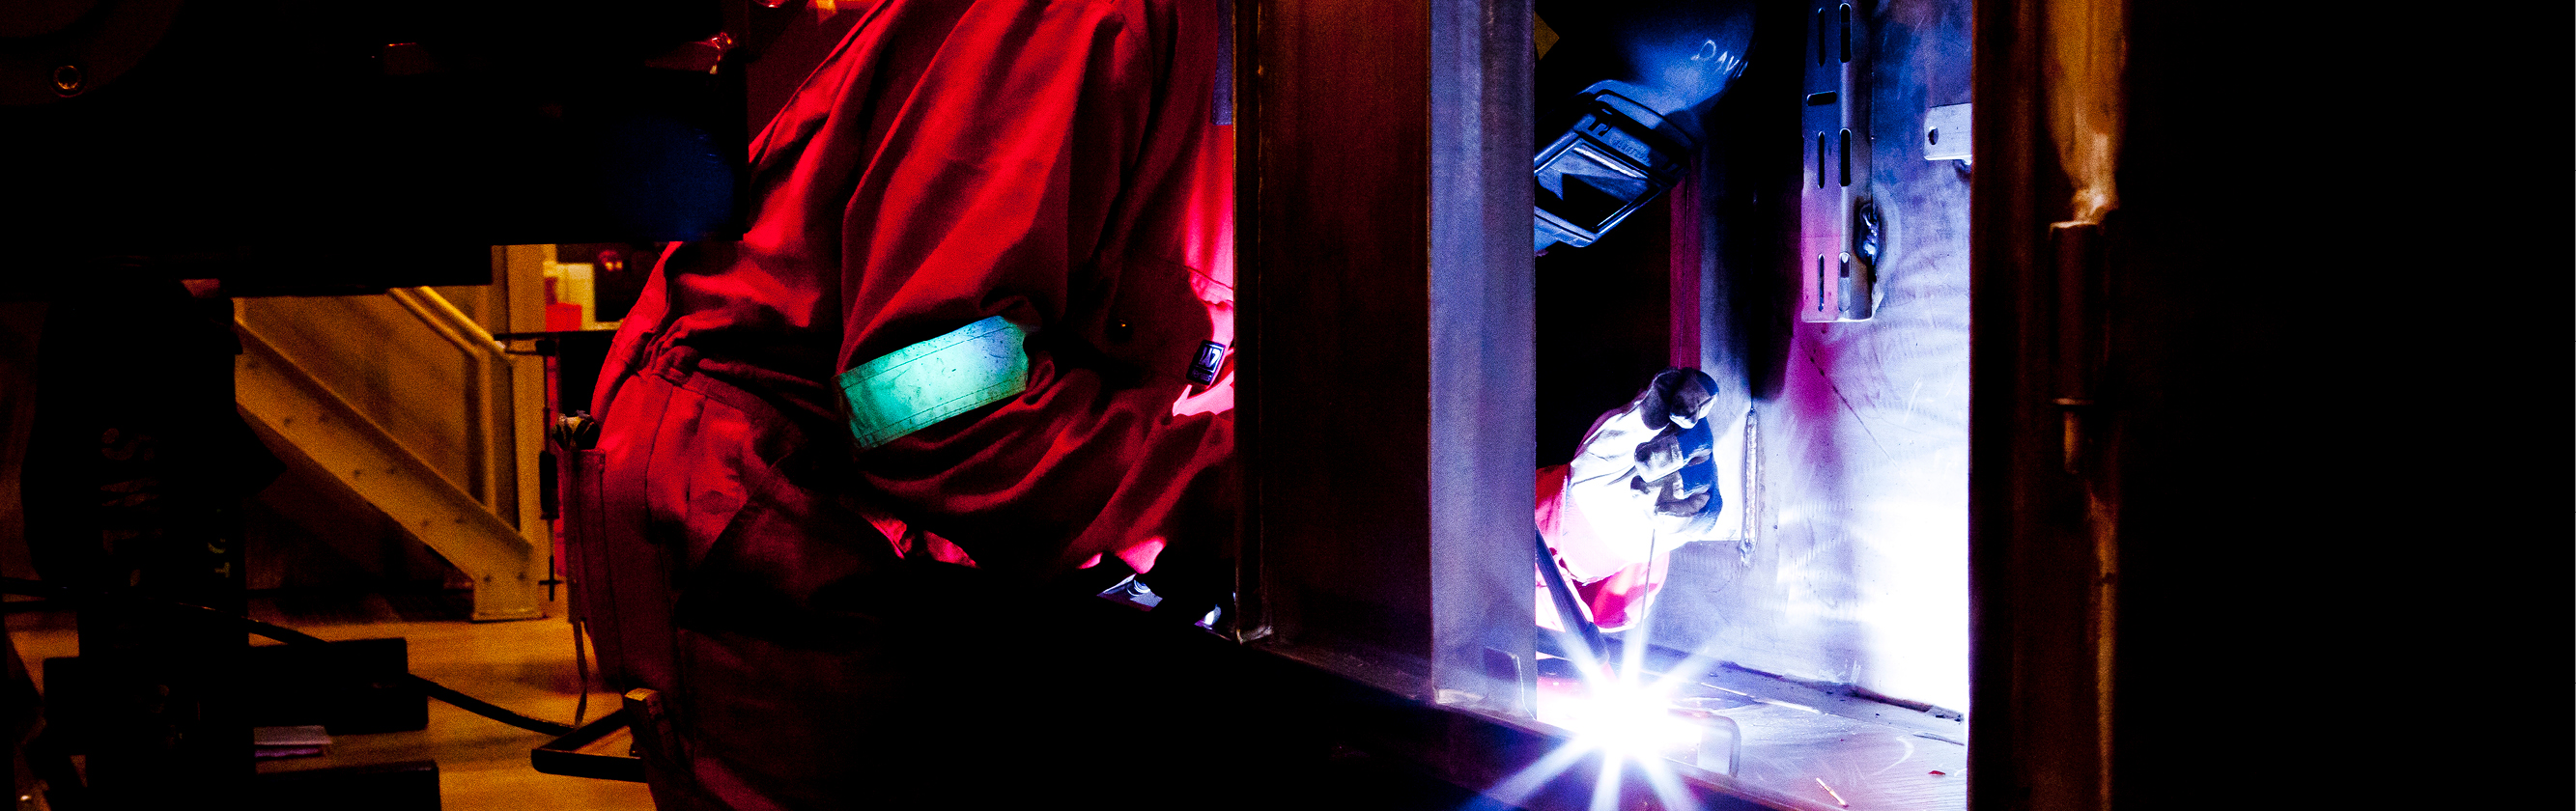 JWS Welding and Industrial Supplies banner image showing a person rod welding wearing protective clothing and welding mask